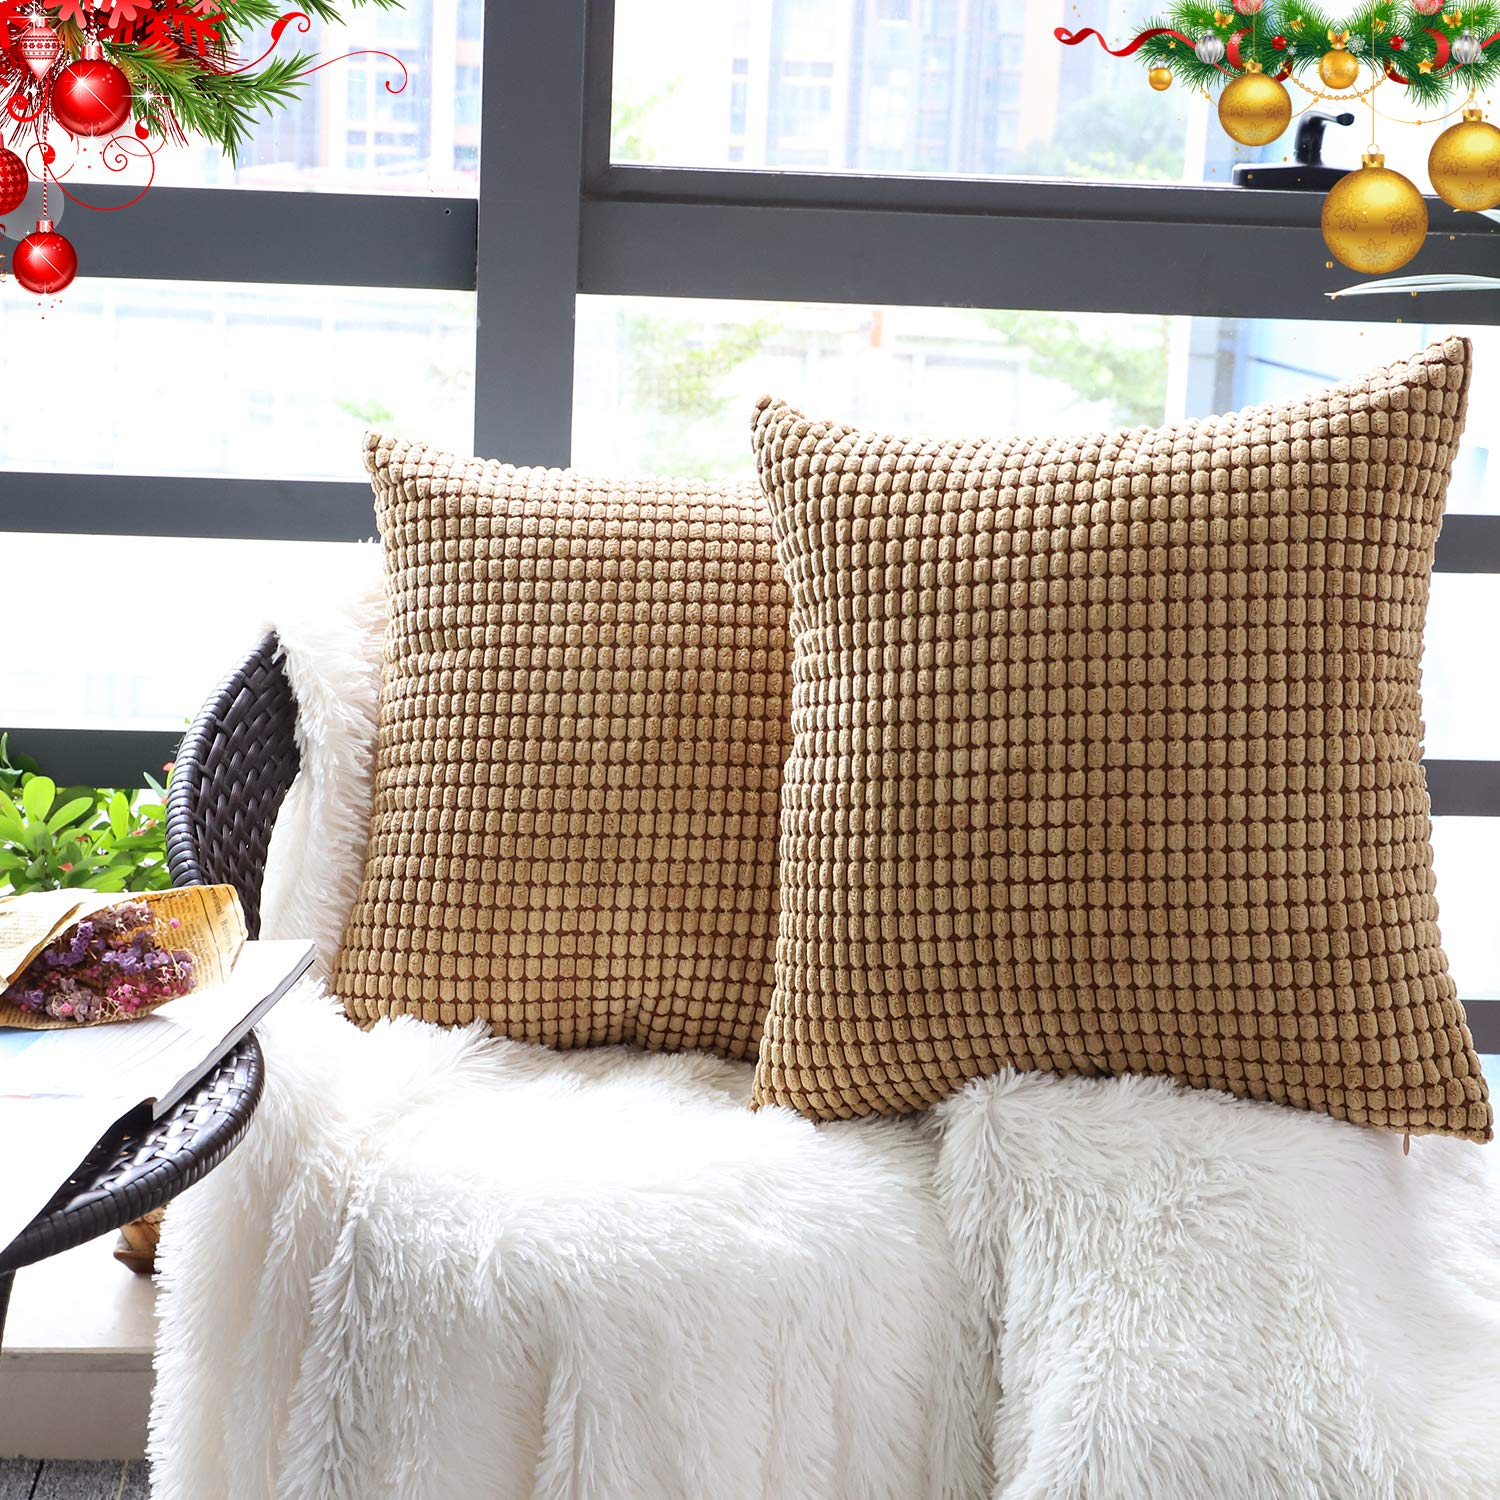 """Set of 2,Decorative Throw Pillow Covers 20"""" x 20"""" (No Insert),Solid Cozy Corduroy Corn Square Pillow Case Cover,Soft Velvet Large Cushion Covers with Hidden Zipper for Couch/Sofa/Bed,Light Brown"""